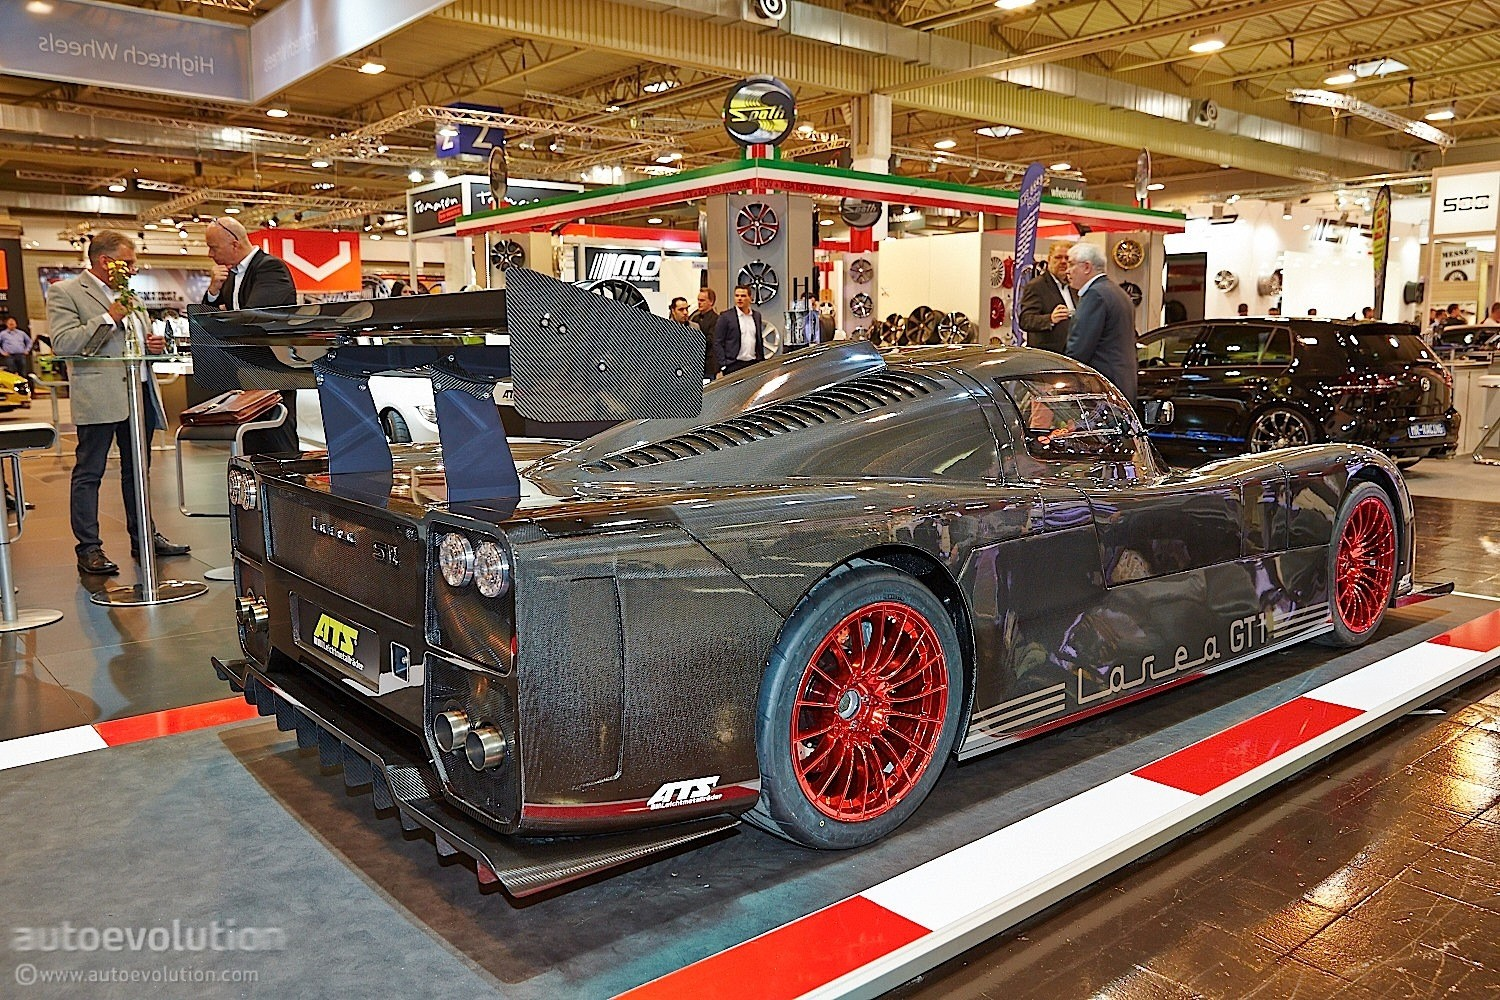 1 260 Hp Larea Gt1 S12 Is Barely Street Legal At Essen